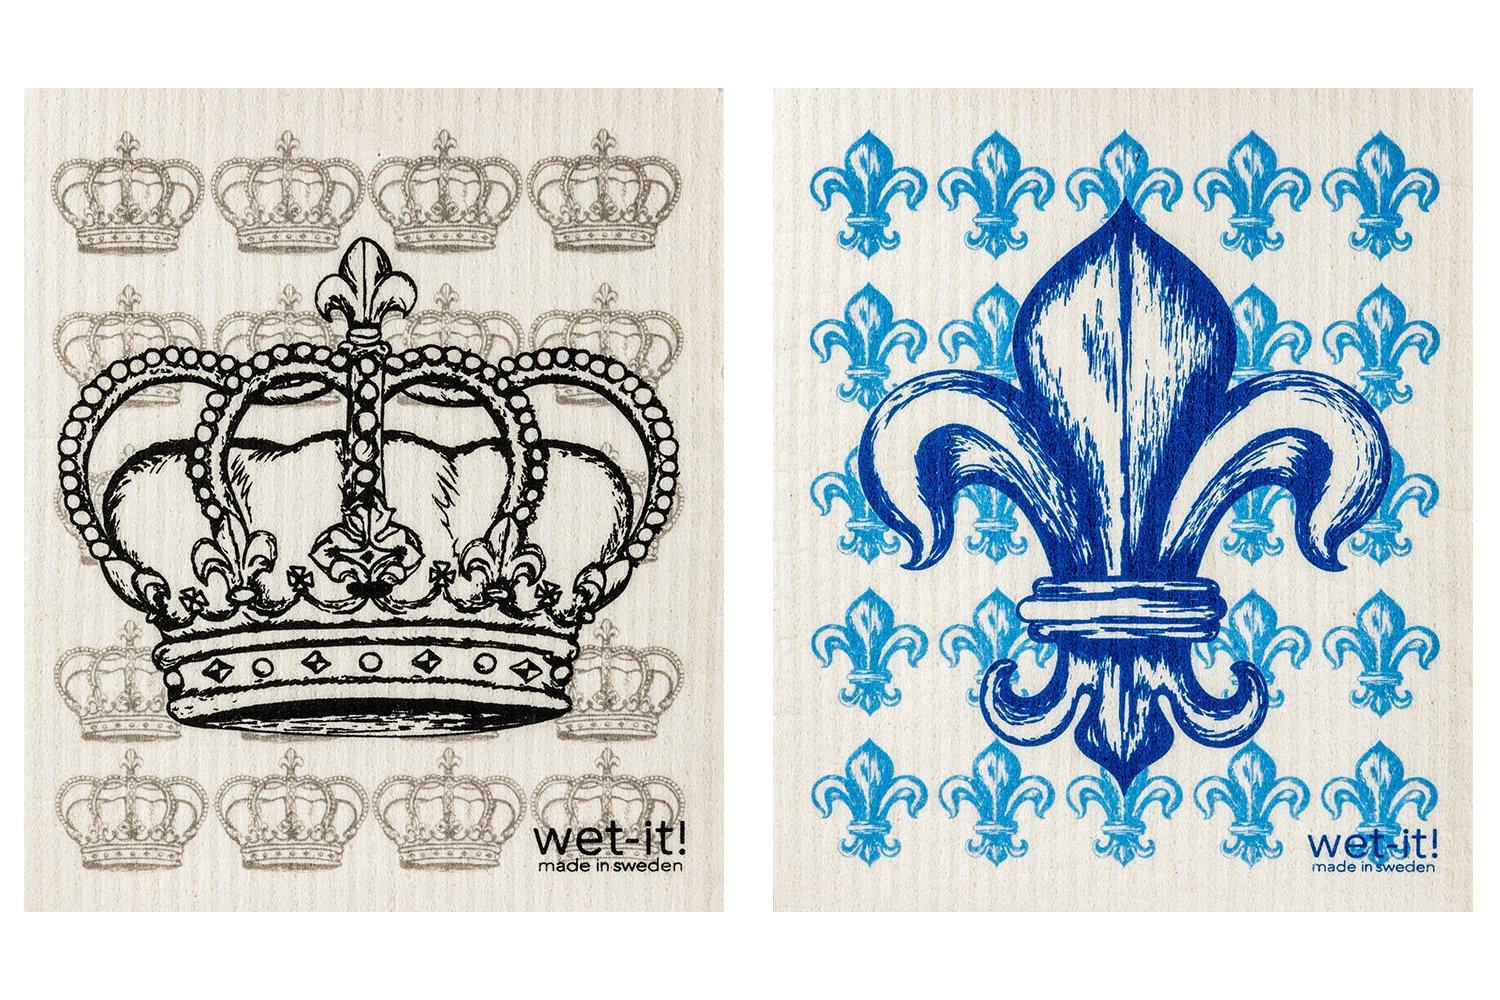 Amazon.com: Wet-It Swedish Dishcloth Set of 2 (Fleur de Lis and ...